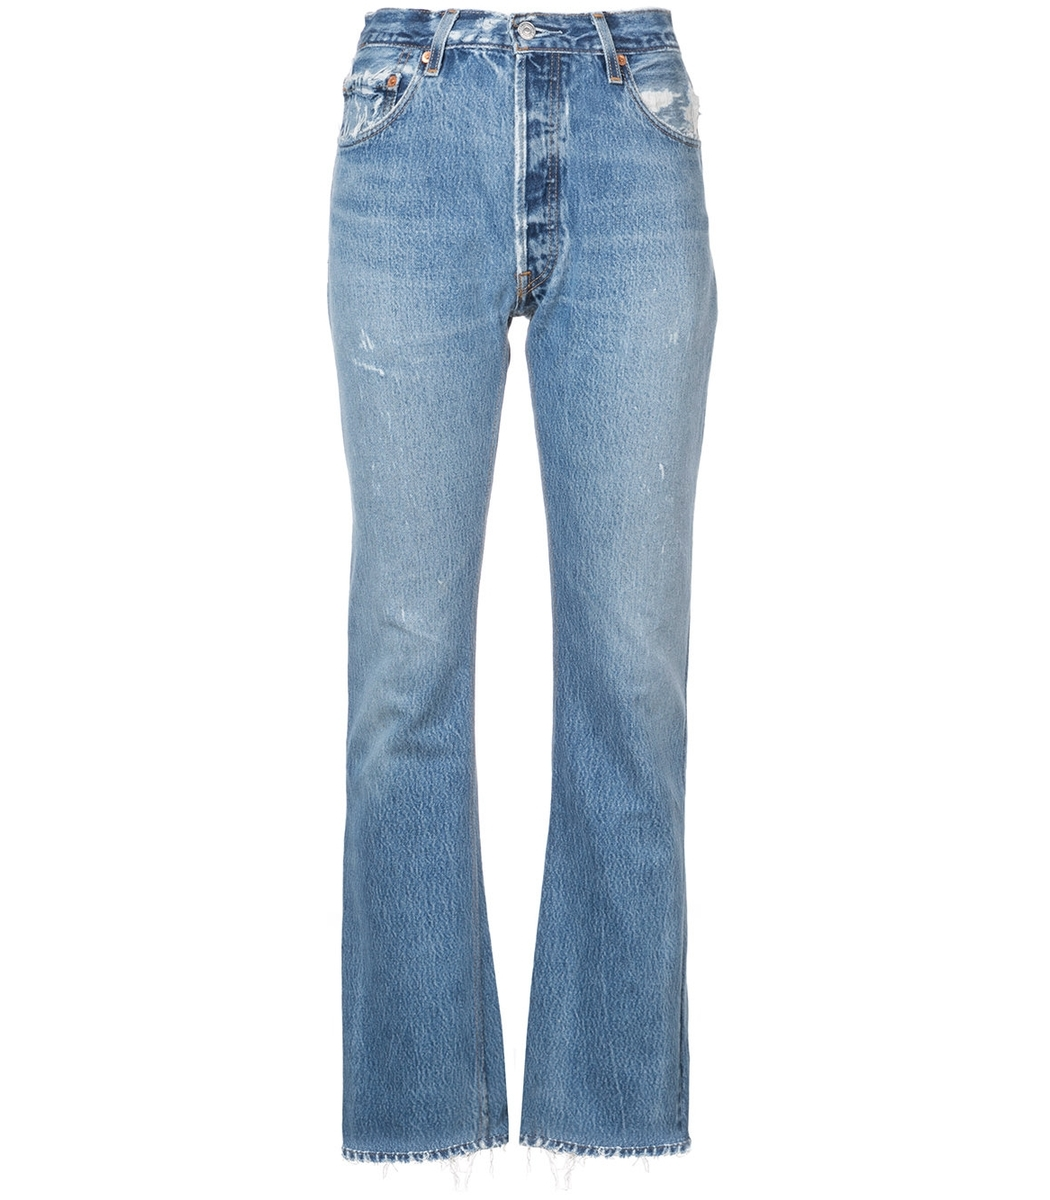 DONE Blue High-Rise Bootcut Jeans